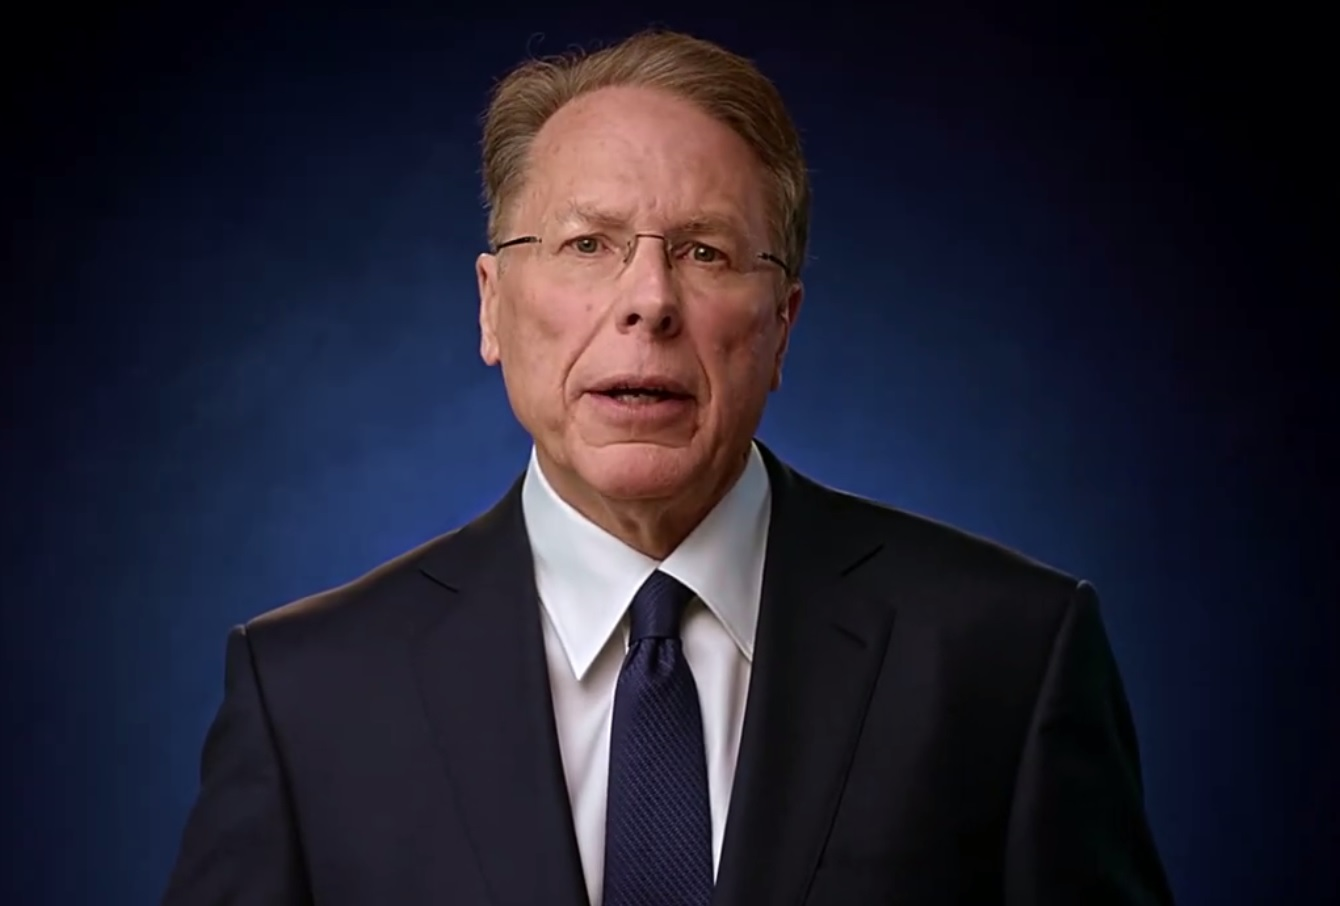 nra arguments These people use a multitude of arguments in order to attempt to fight any gun regulations  wayne lapierre and the rest of the nra administration.